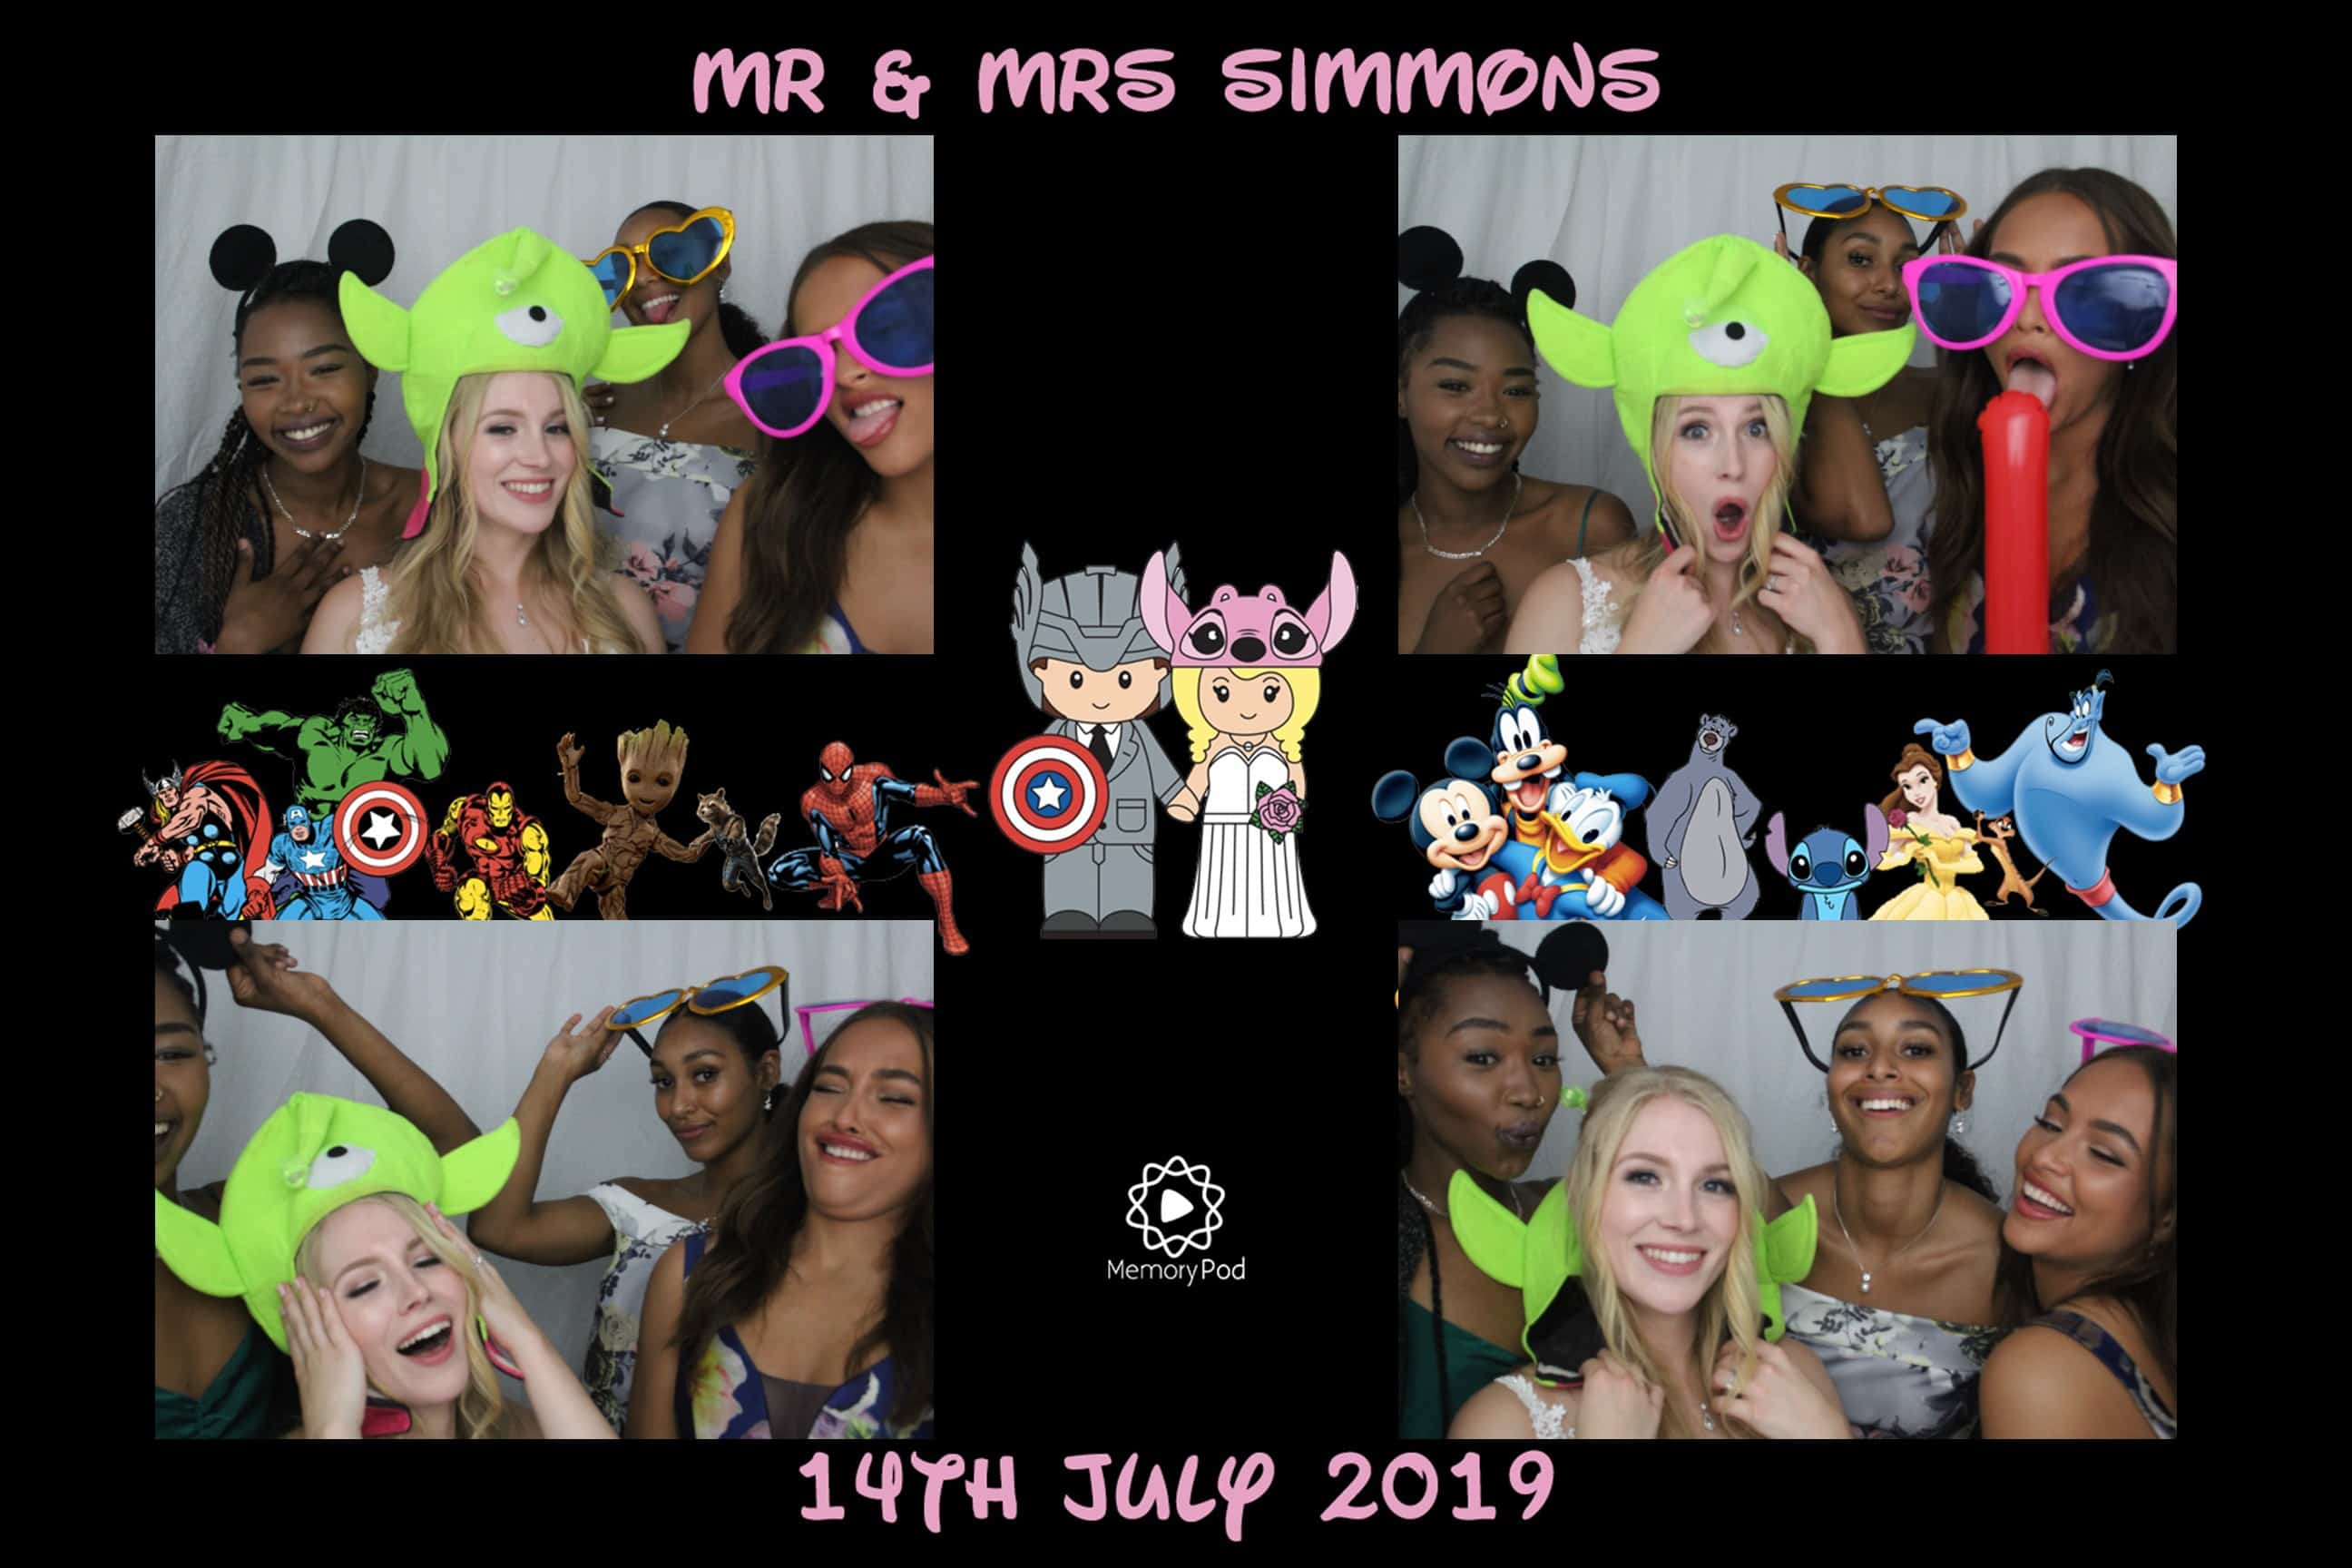 Mr & Mrs Simmons Wedding